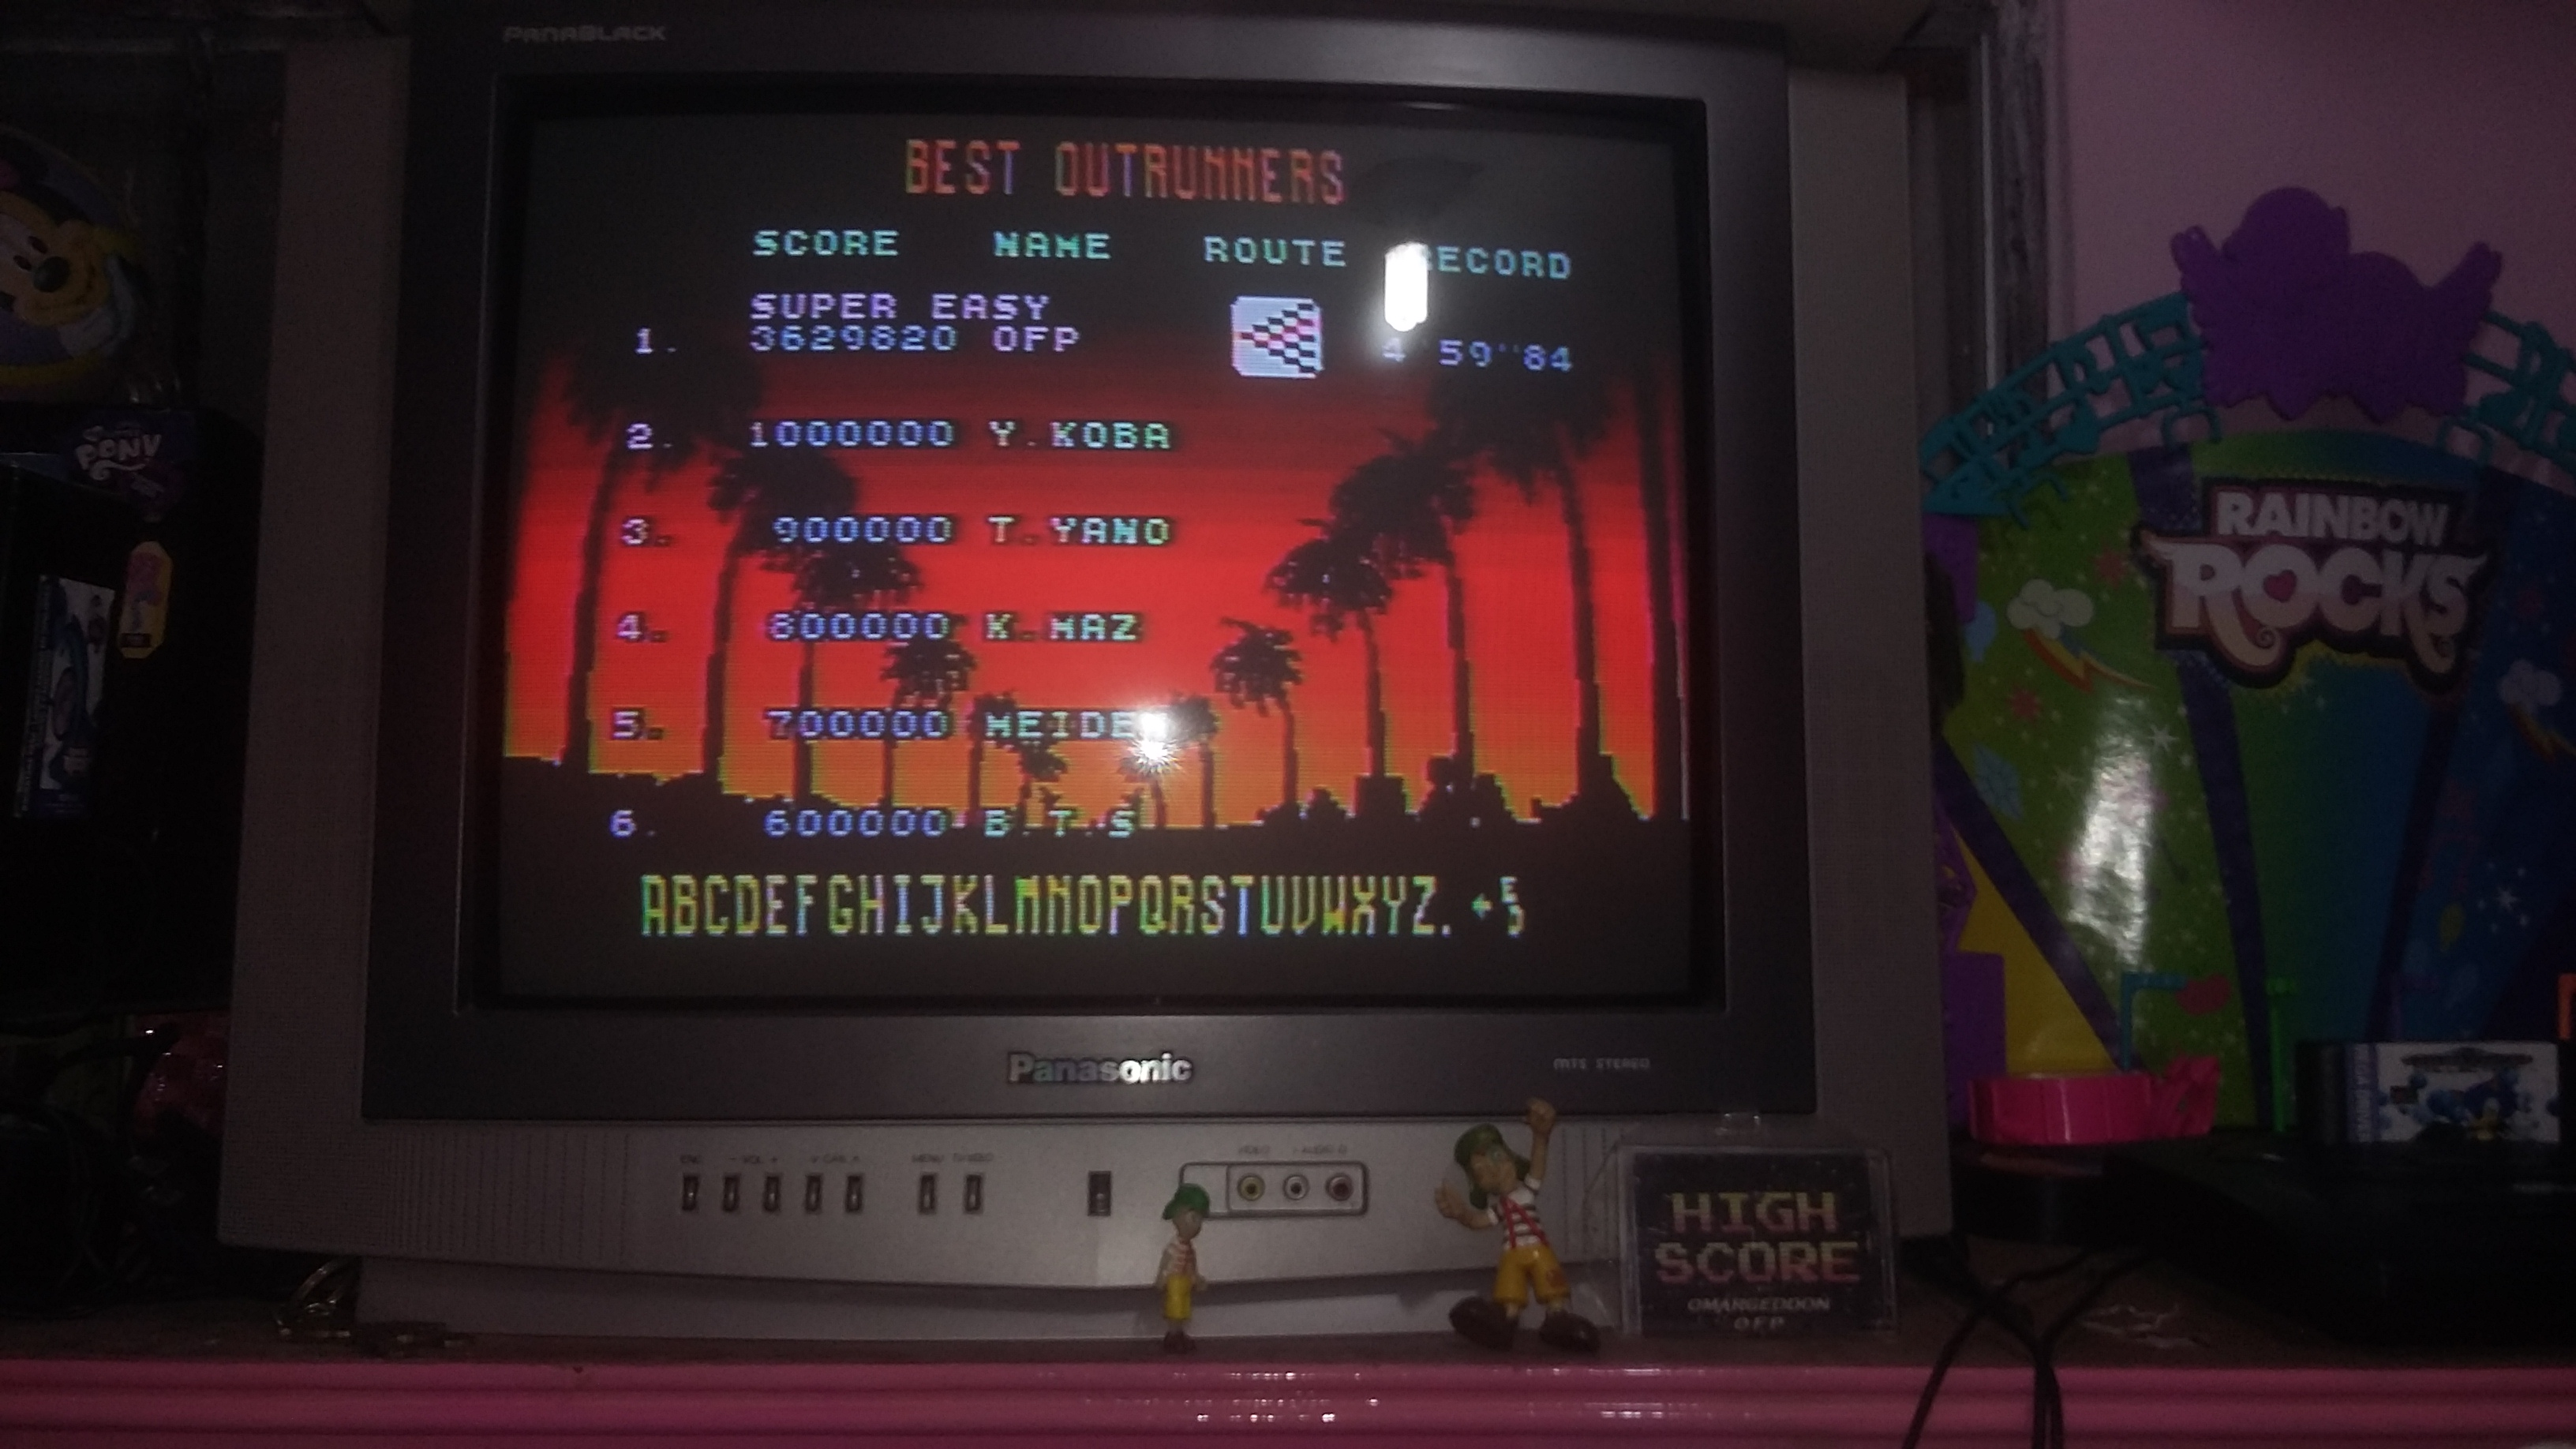 omargeddon: Outrun [Super Easy] (Sega Genesis / MegaDrive) 3,629,820 points on 2018-08-15 23:01:45